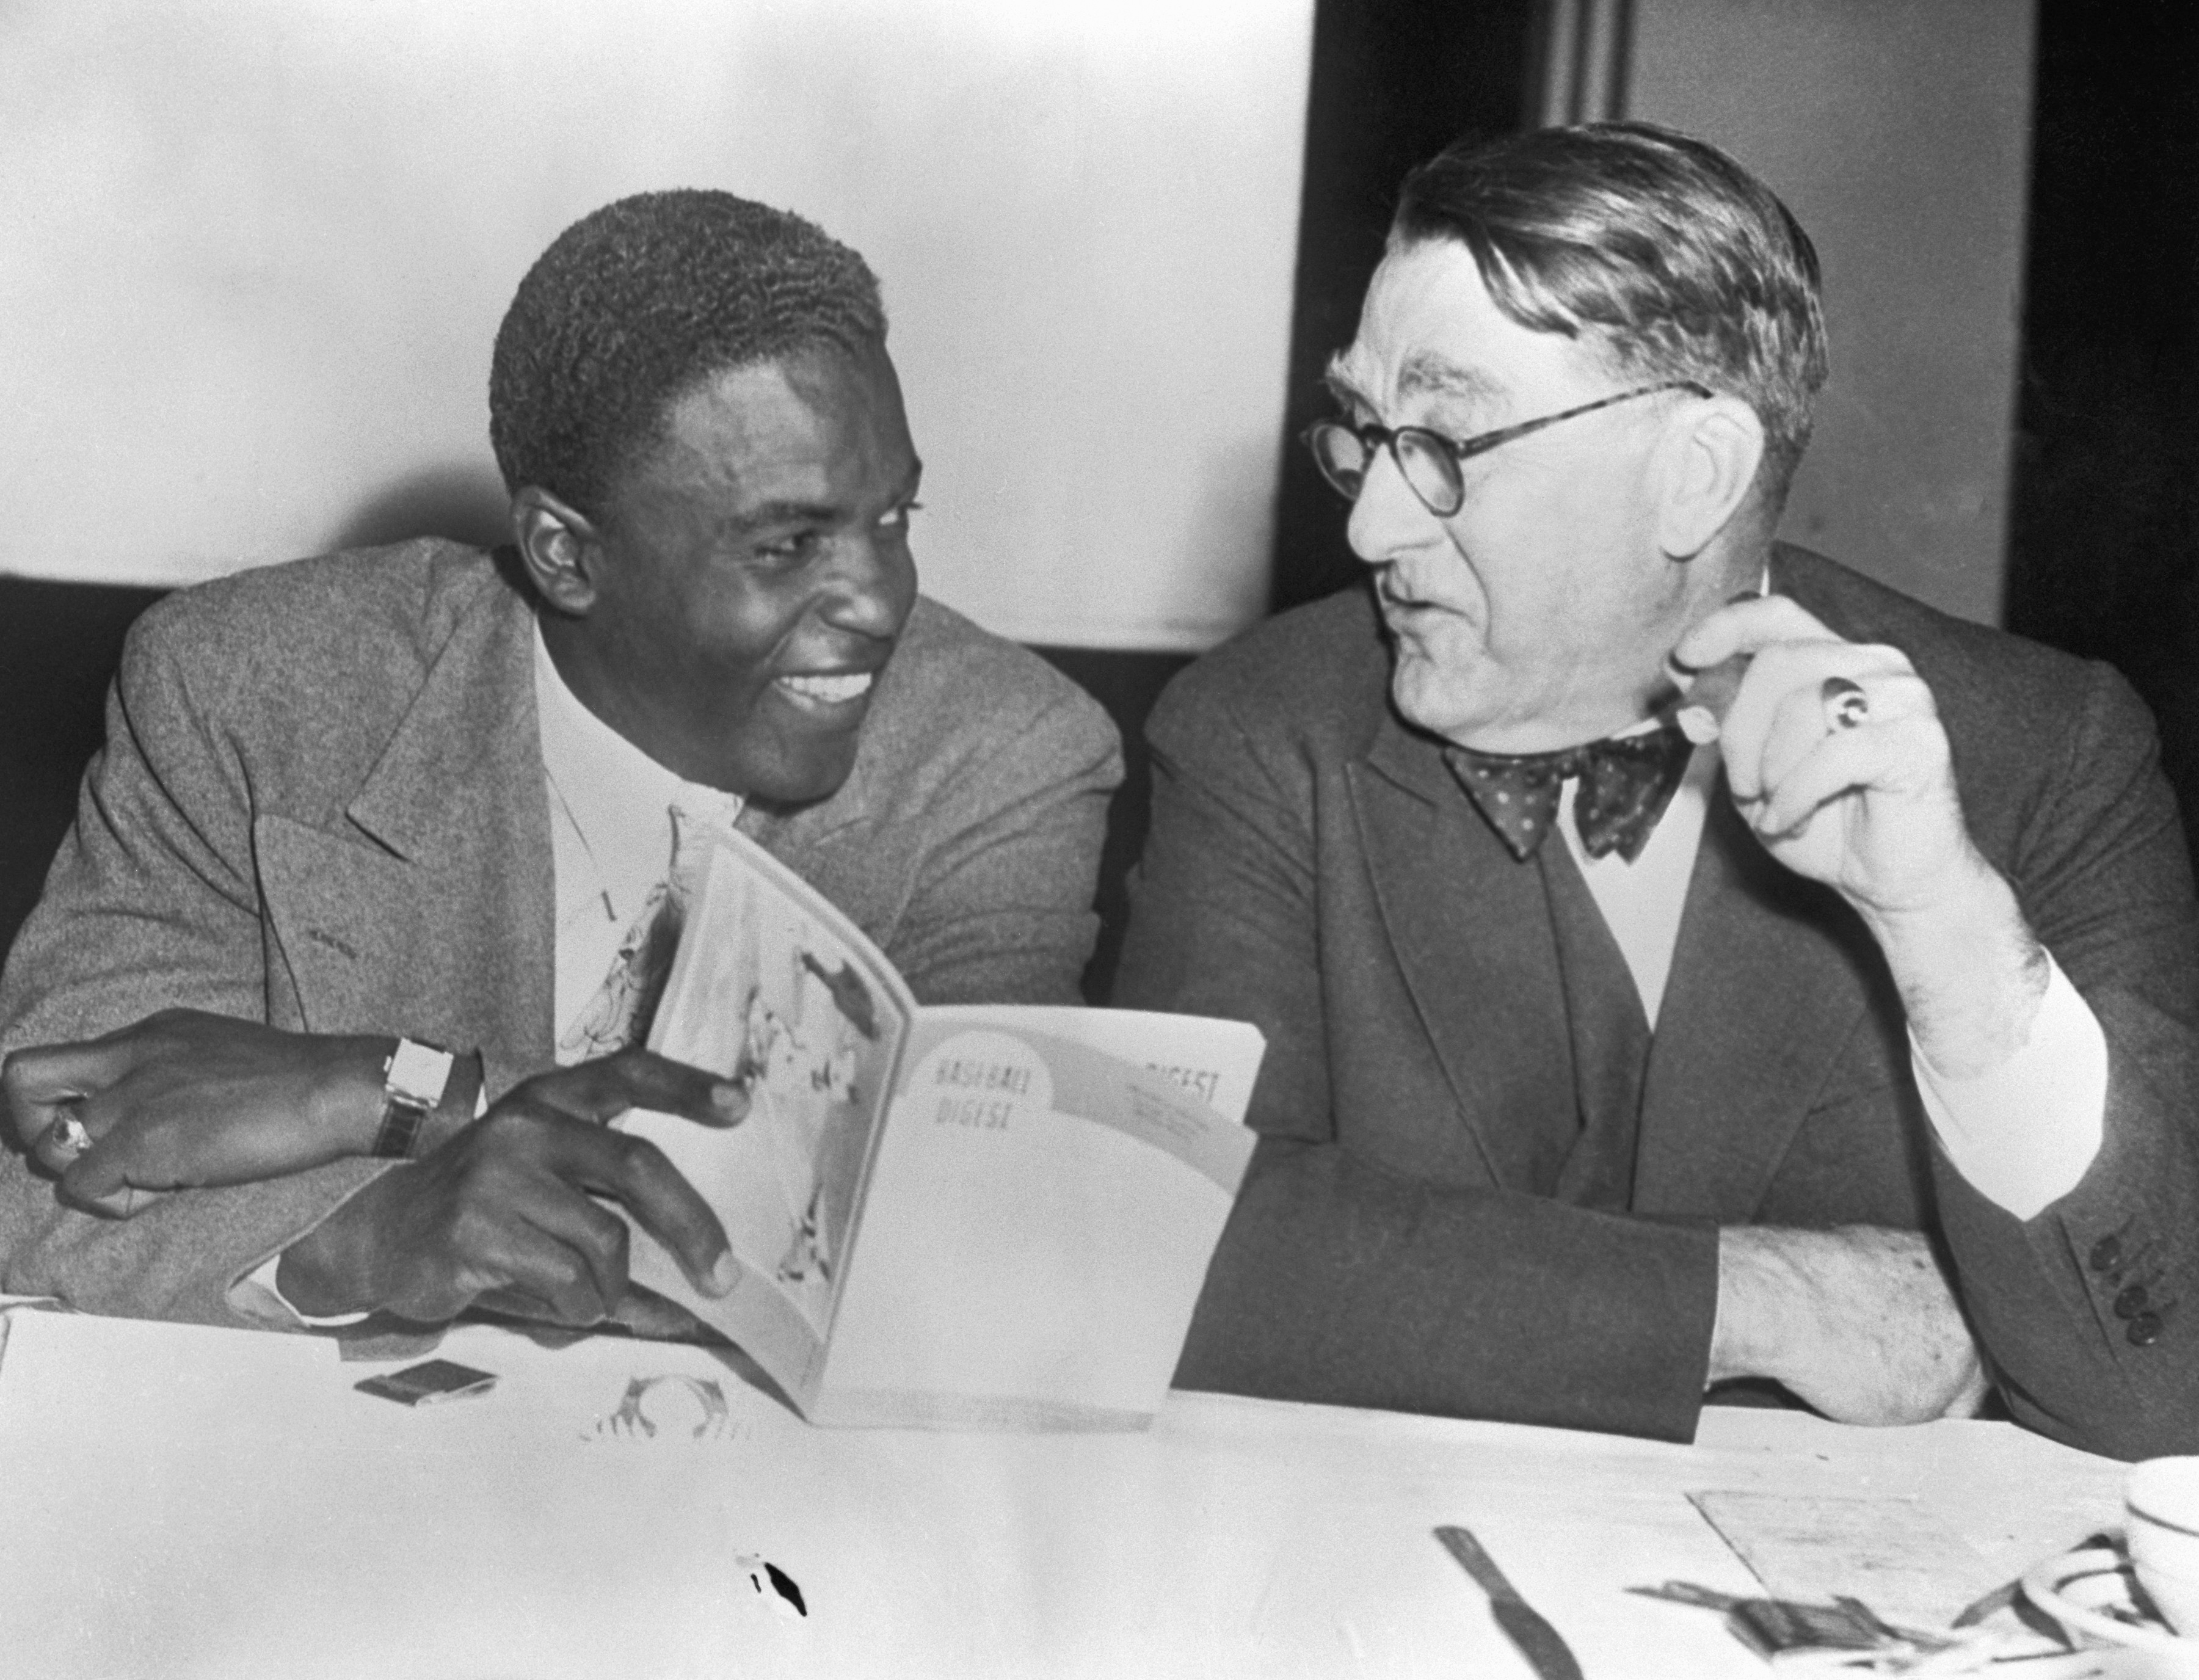 Jackie Robinson and Branch Rickey Looking at Book